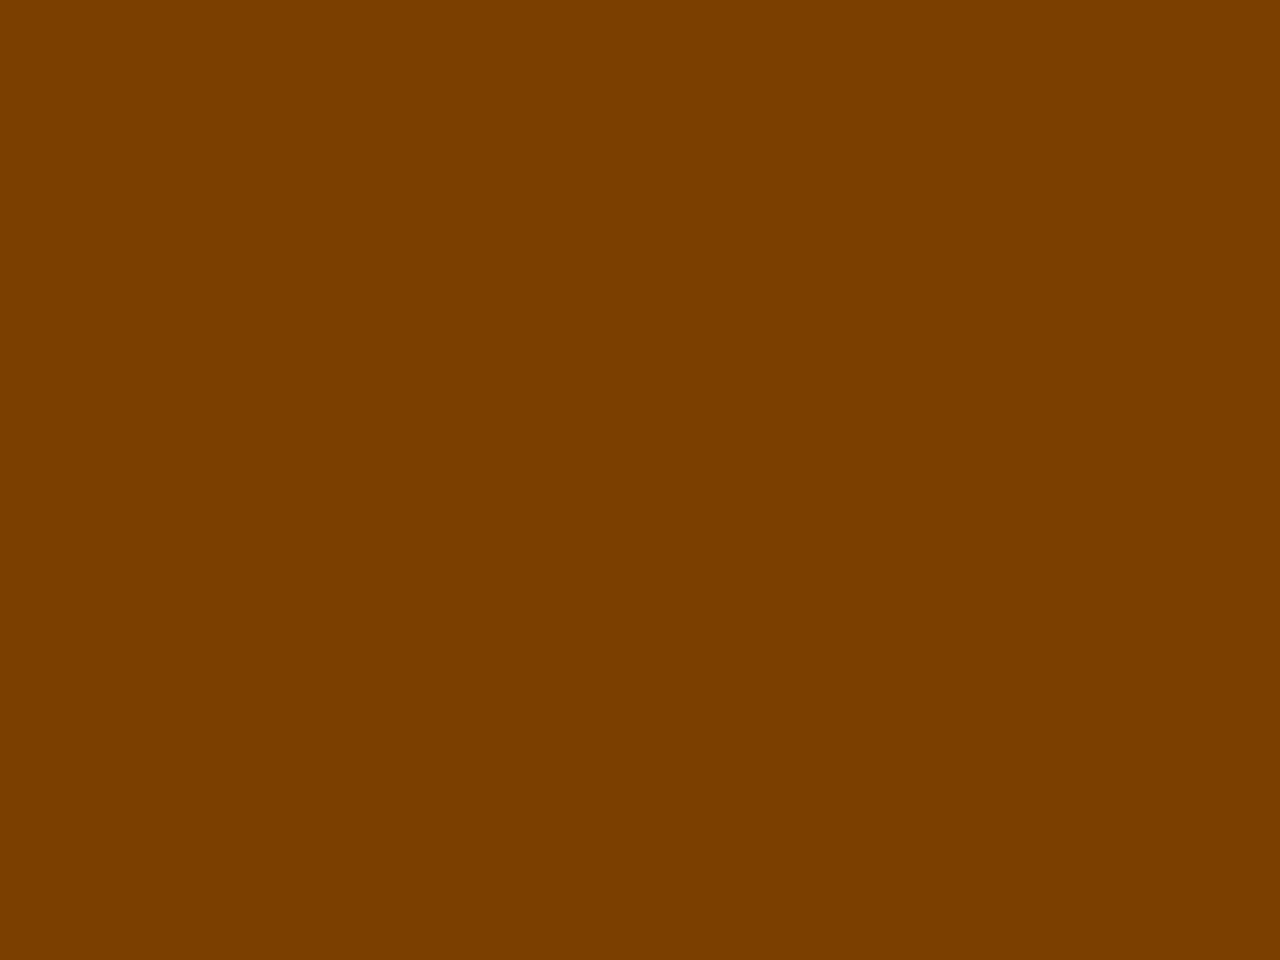 1280x960 Chocolate Traditional Solid Color Background